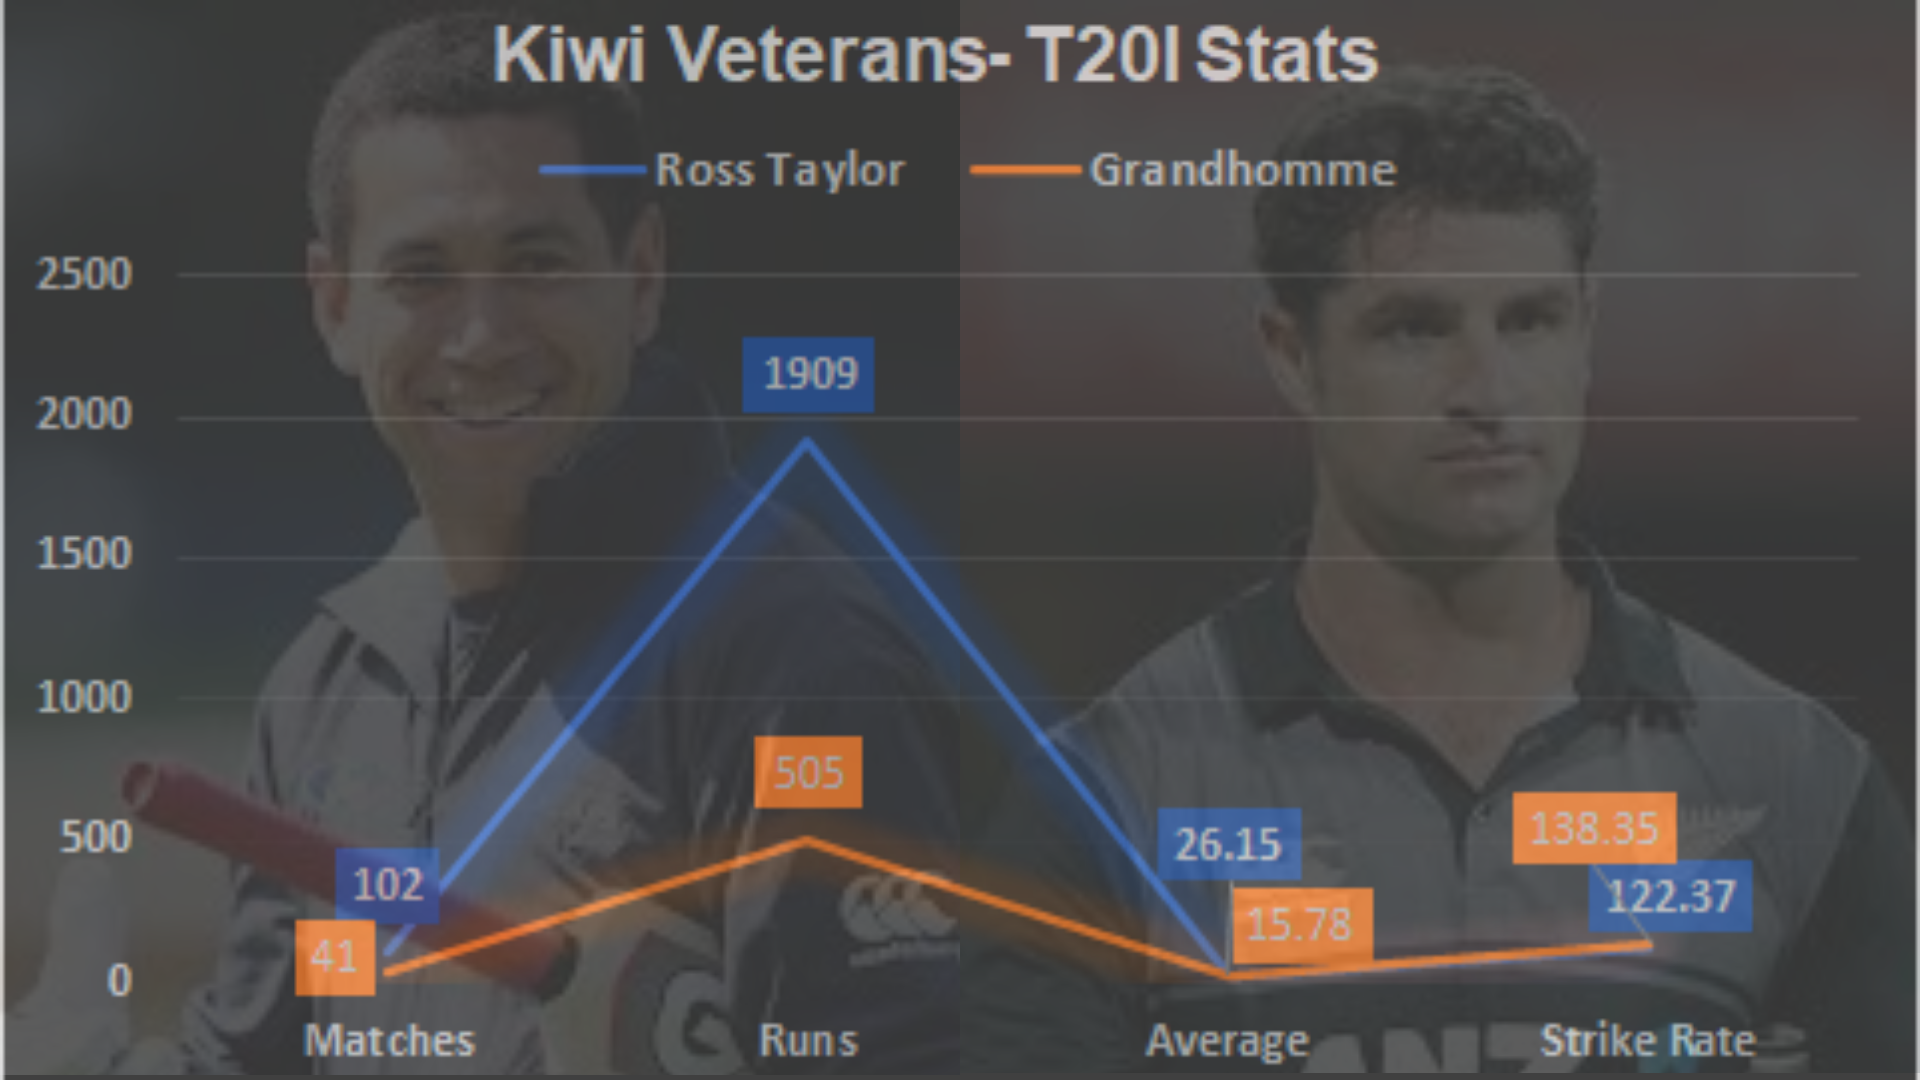 An Analysis of the Kiwi T20 World Cup 2021 Squad Data Analysis